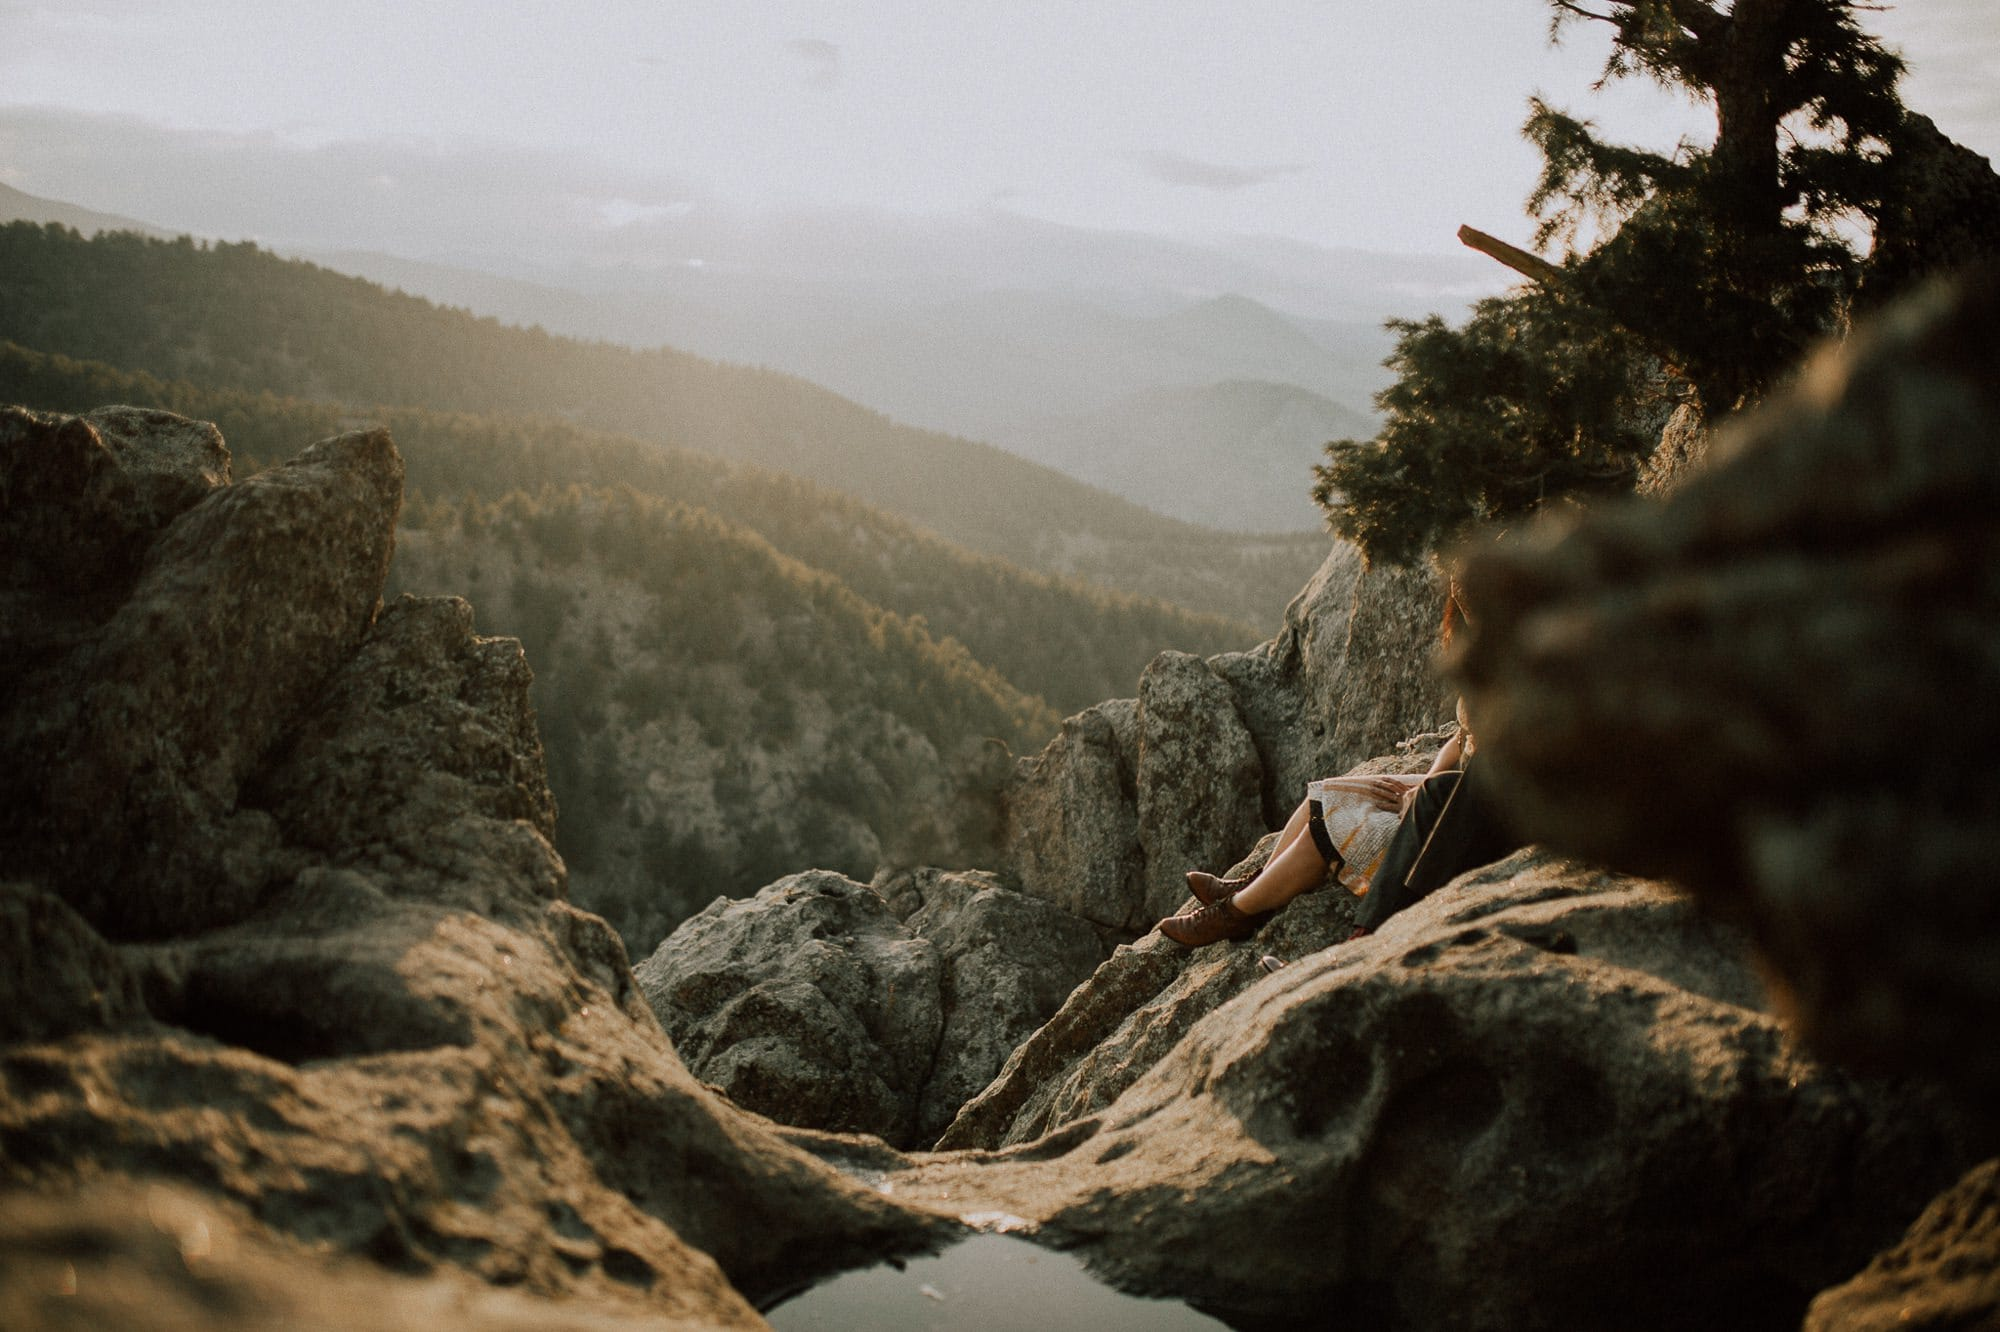 Lost Gulch outlook, Boulder Colorado, Colorado Mountain Wedding Photographer, Adventurous couples, Justyna E Butler